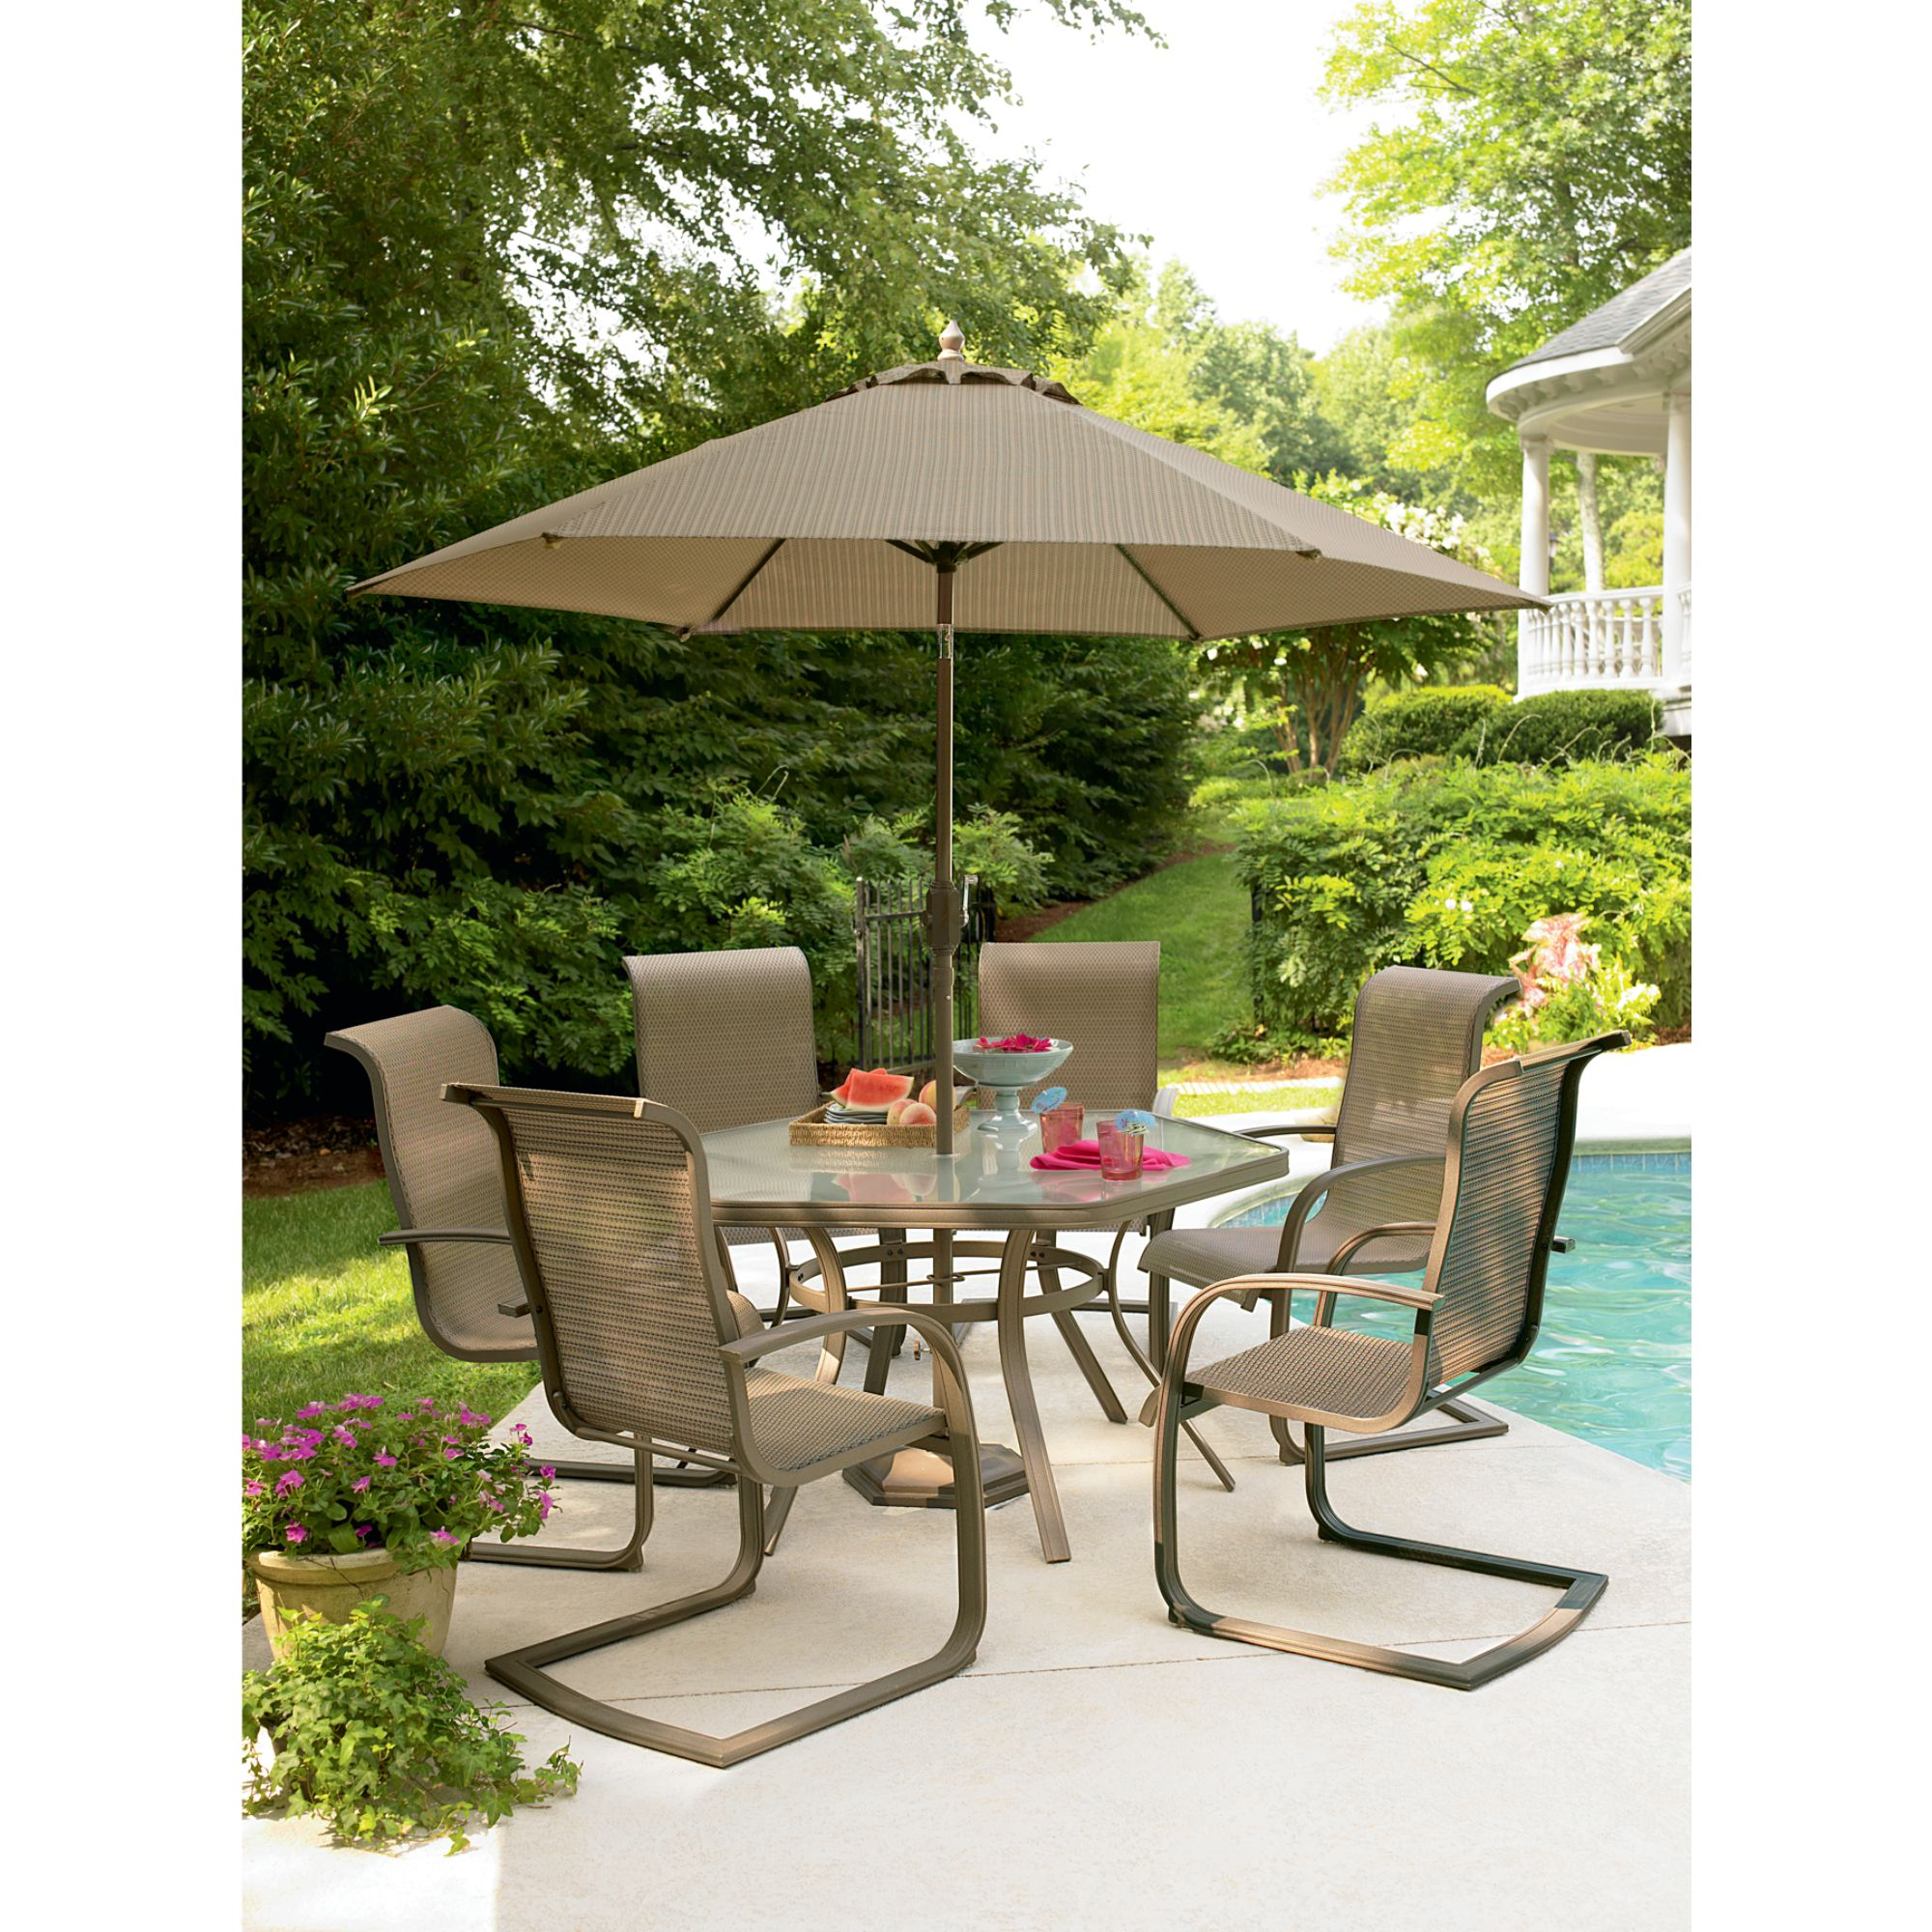 Garden Oasis Grandview 7 Pc. Dining Set - Sears